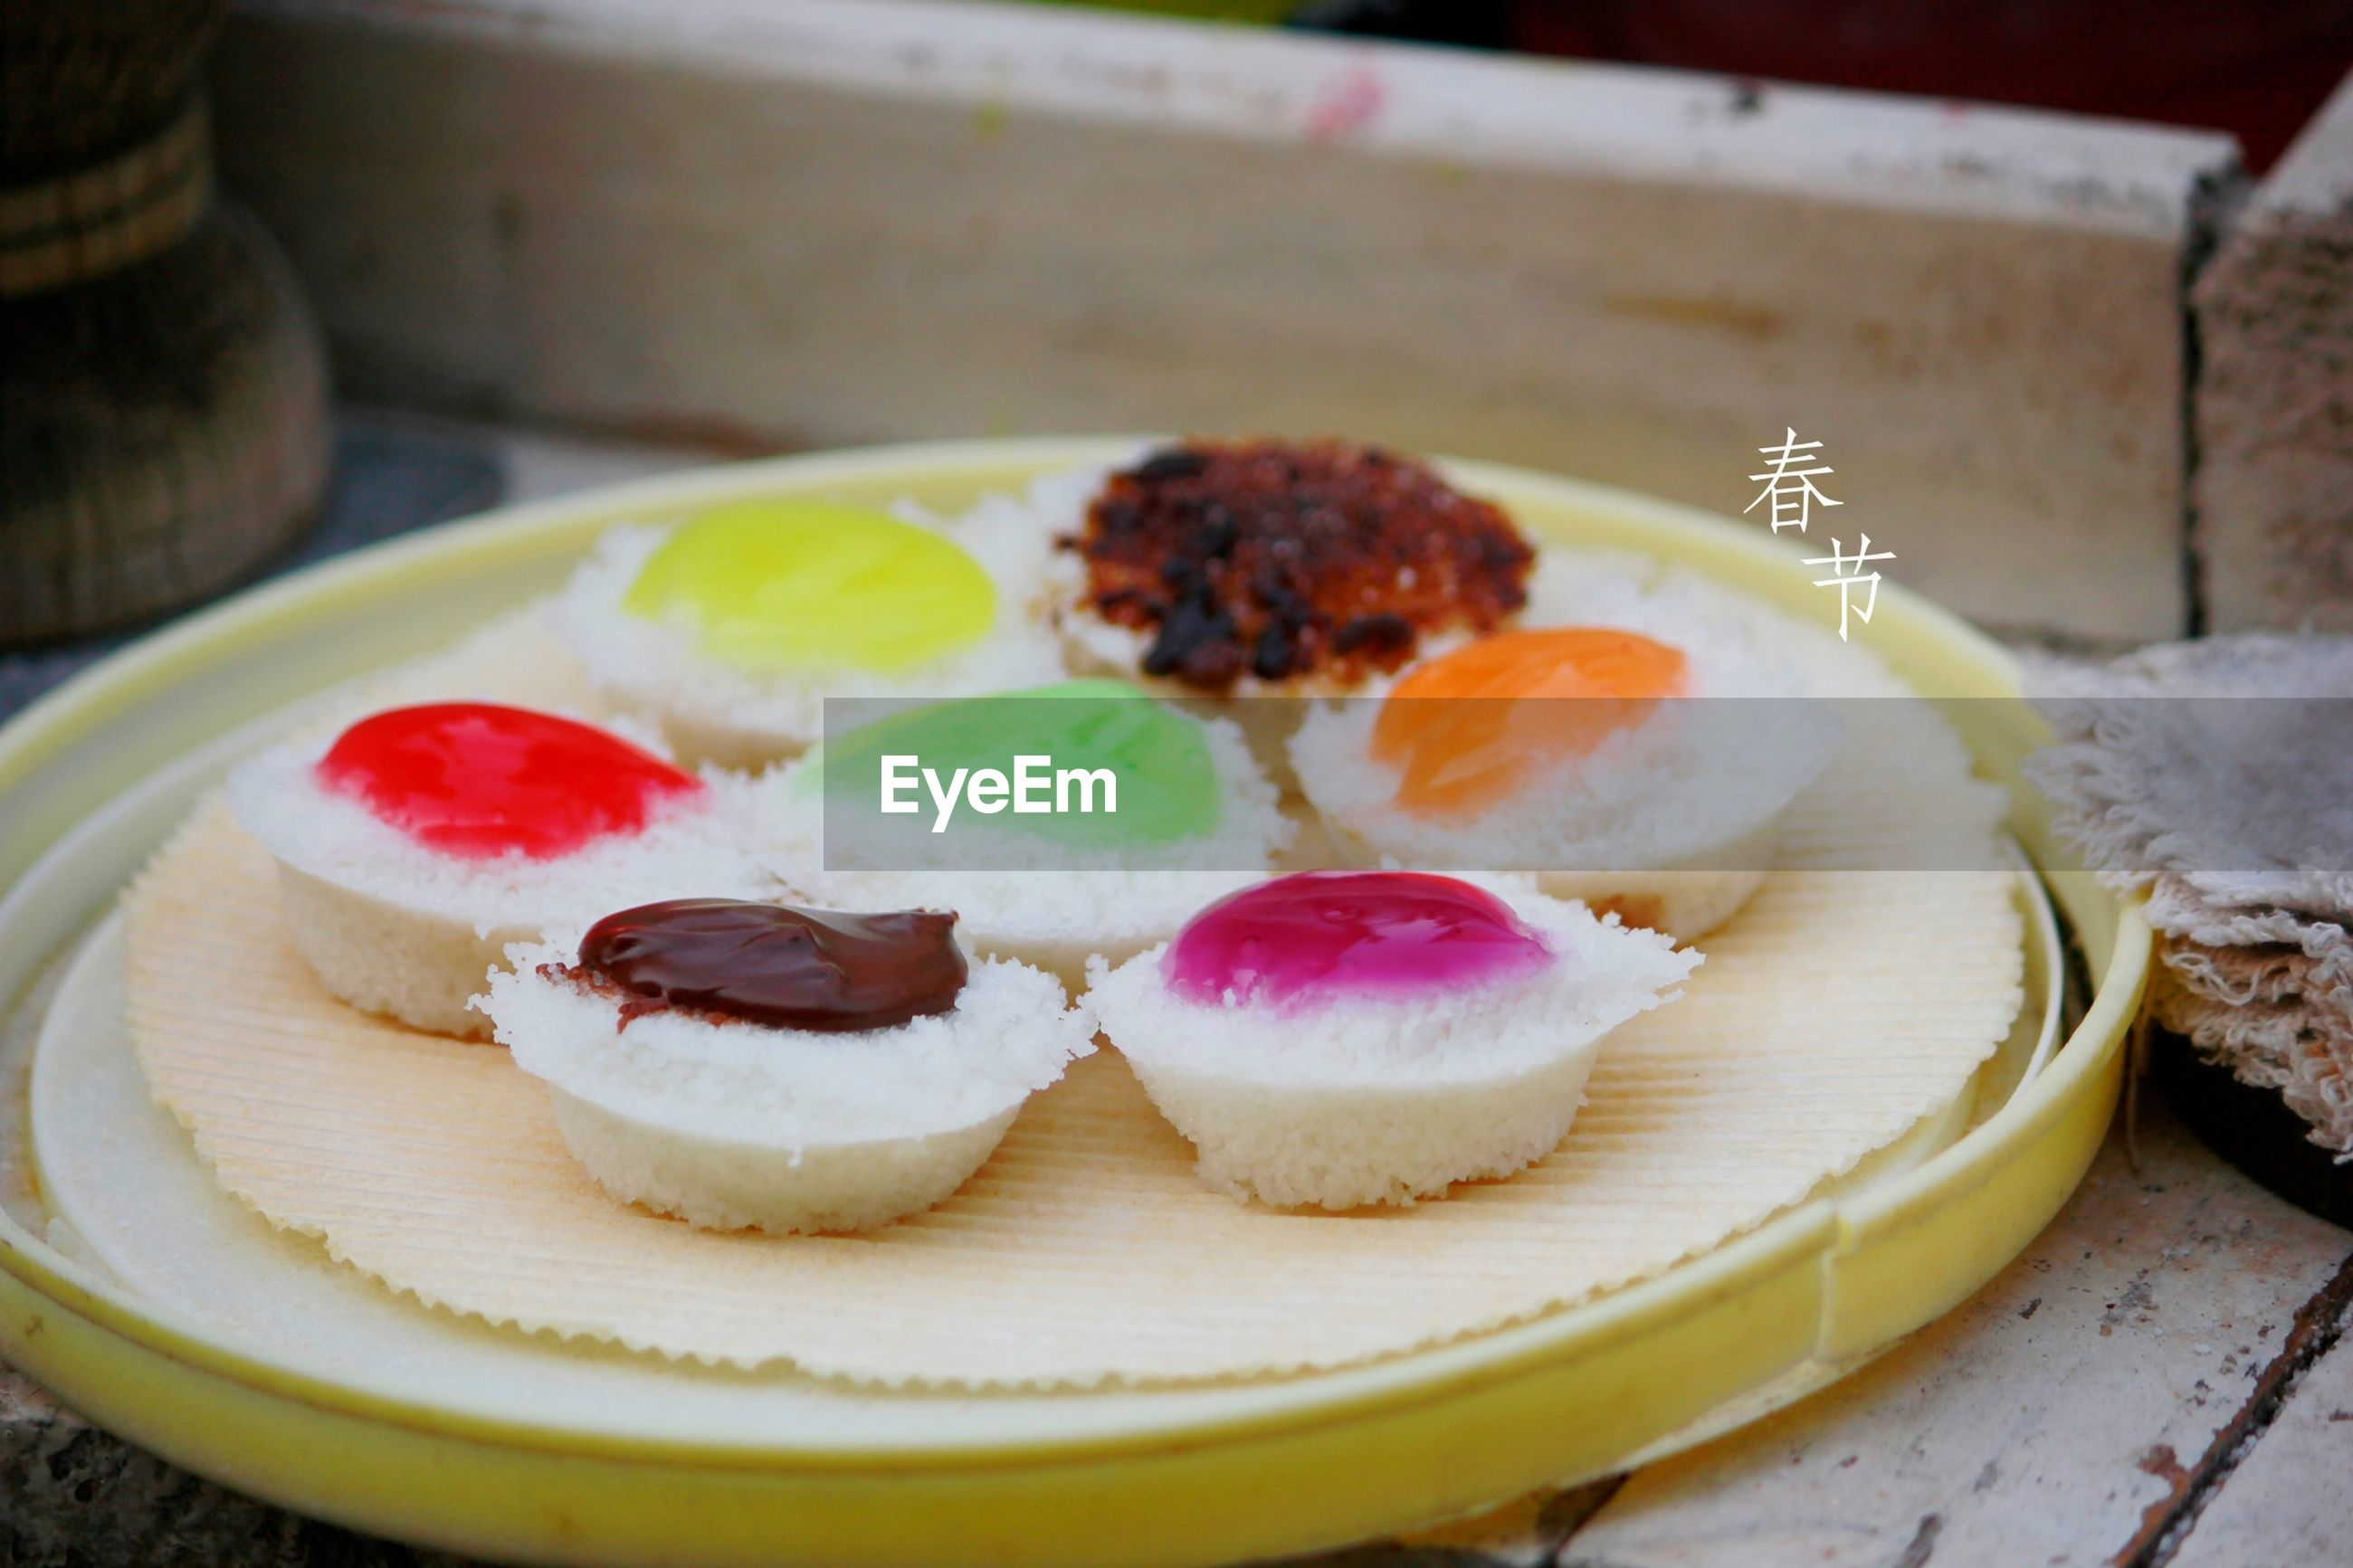 food and drink, sweet food, food, freshness, dessert, indoors, ready-to-eat, indulgence, unhealthy eating, still life, temptation, cake, close-up, table, baked, cupcake, plate, high angle view, variation, serving size